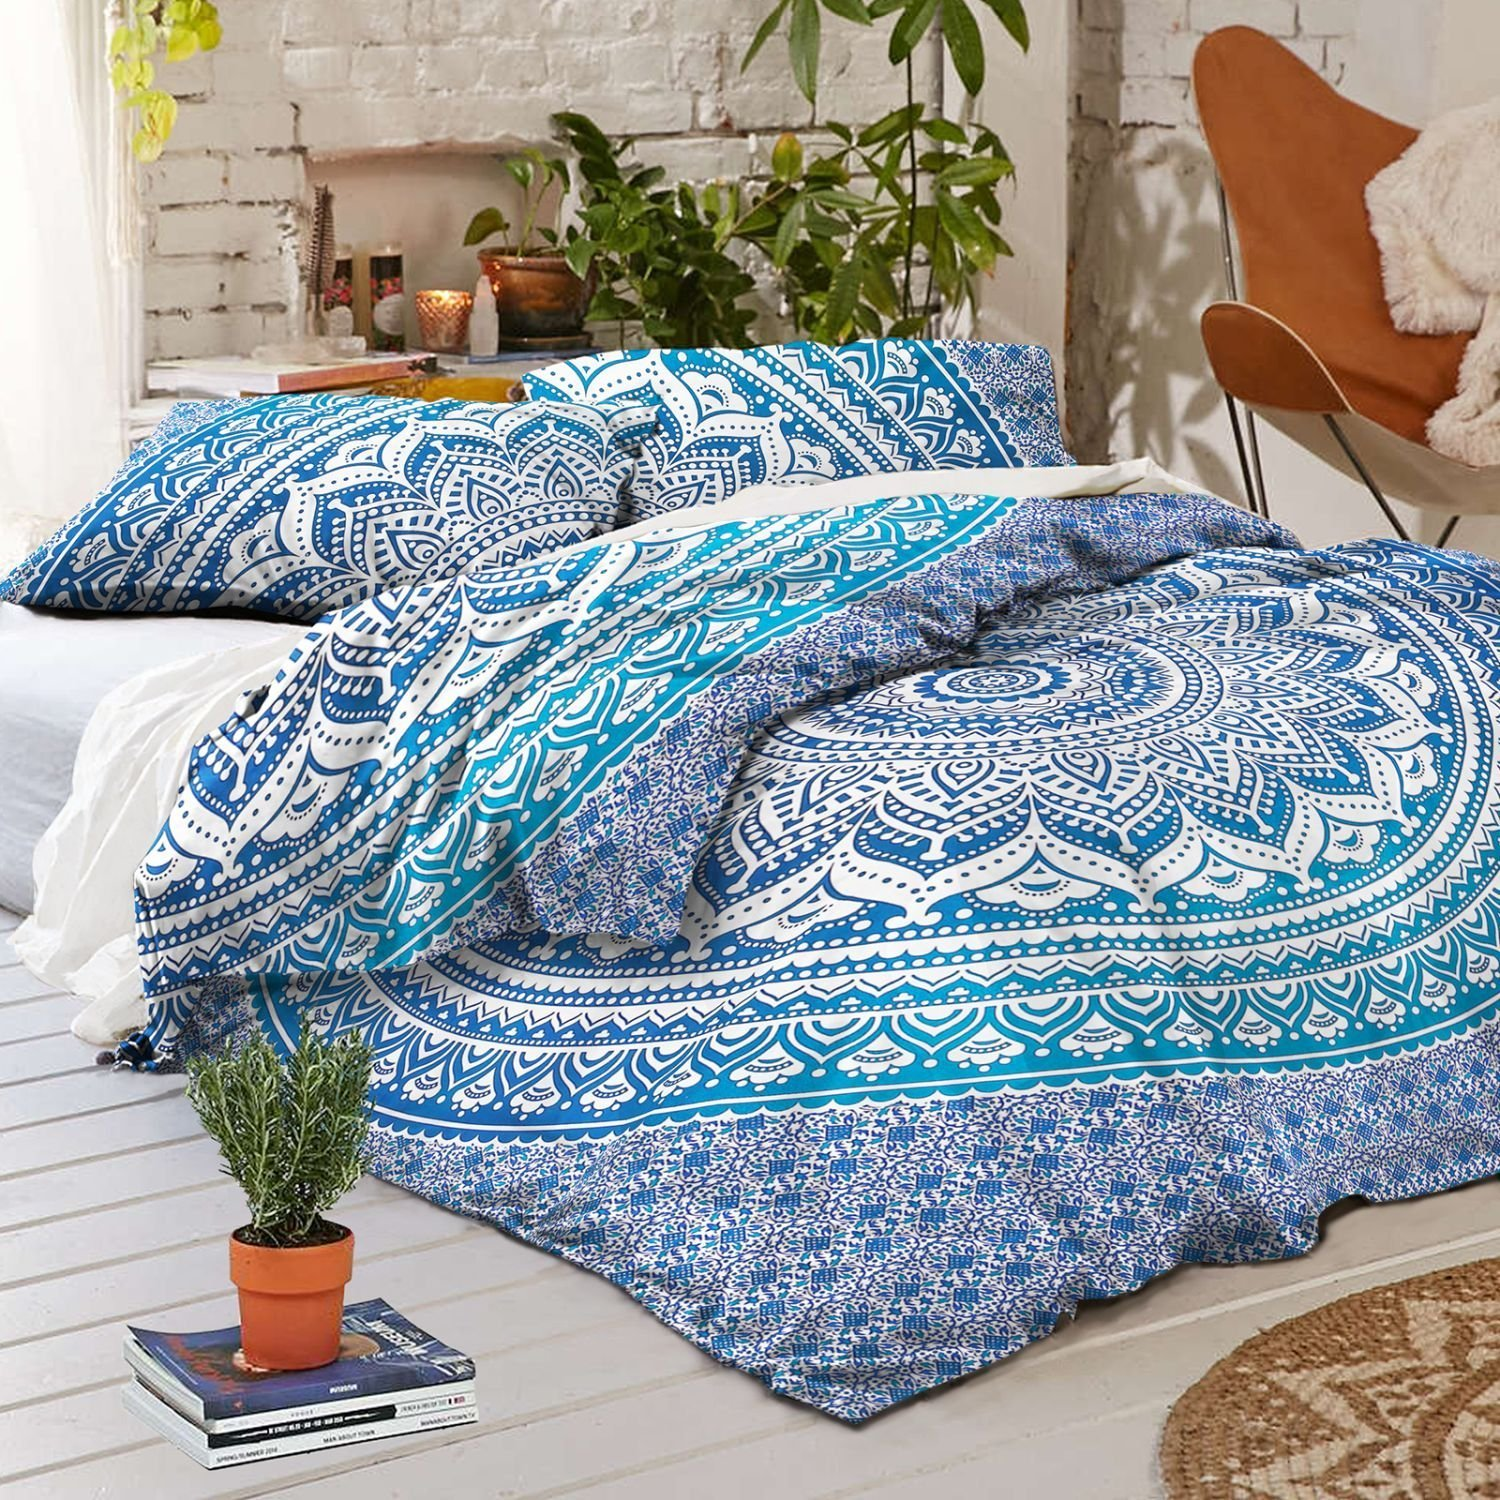 Sophia Art Exclusive Indian Bohemain Full Size Ombre Mandala Tapestry/Wall Hanging Bedding Duvet Quilt Cover with Pilow Duvet Set (Blue)